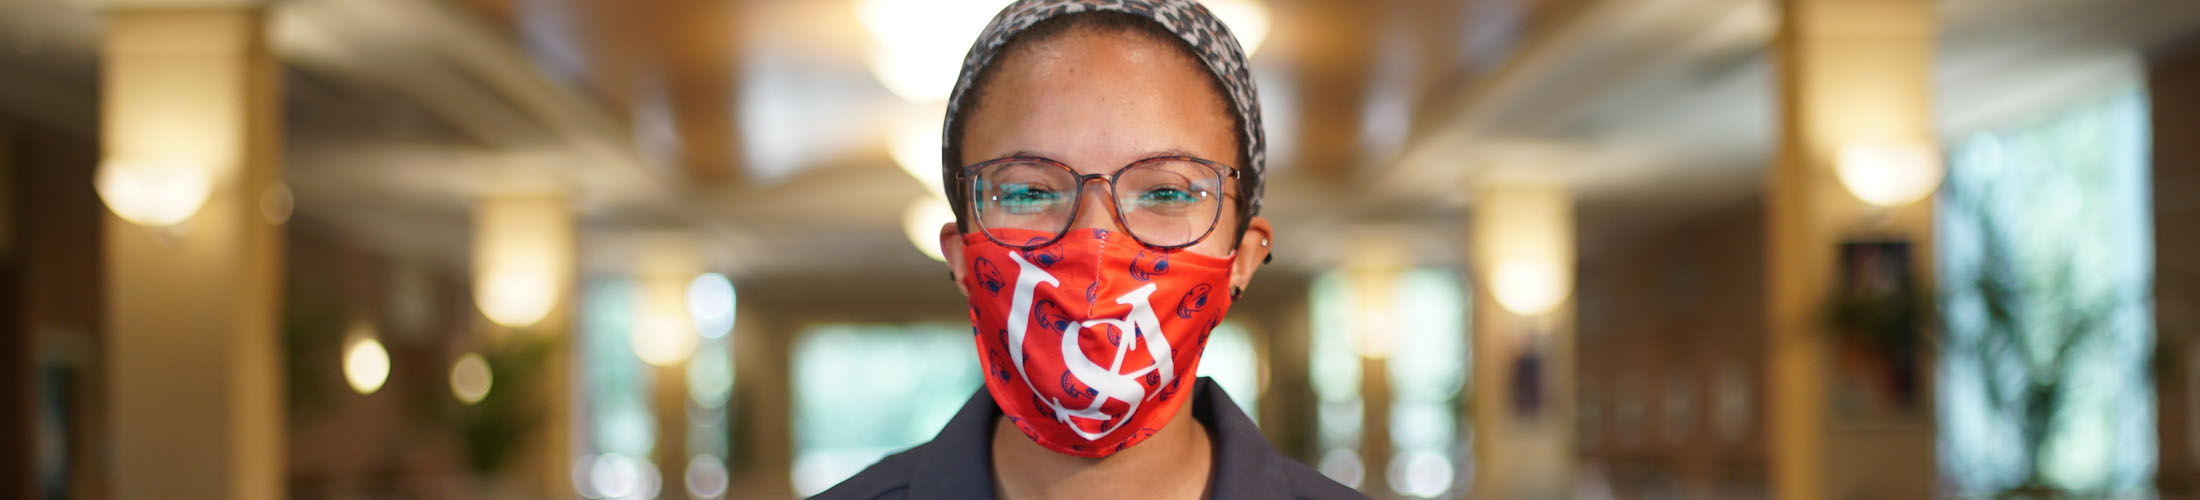 Female student with USA mask on.